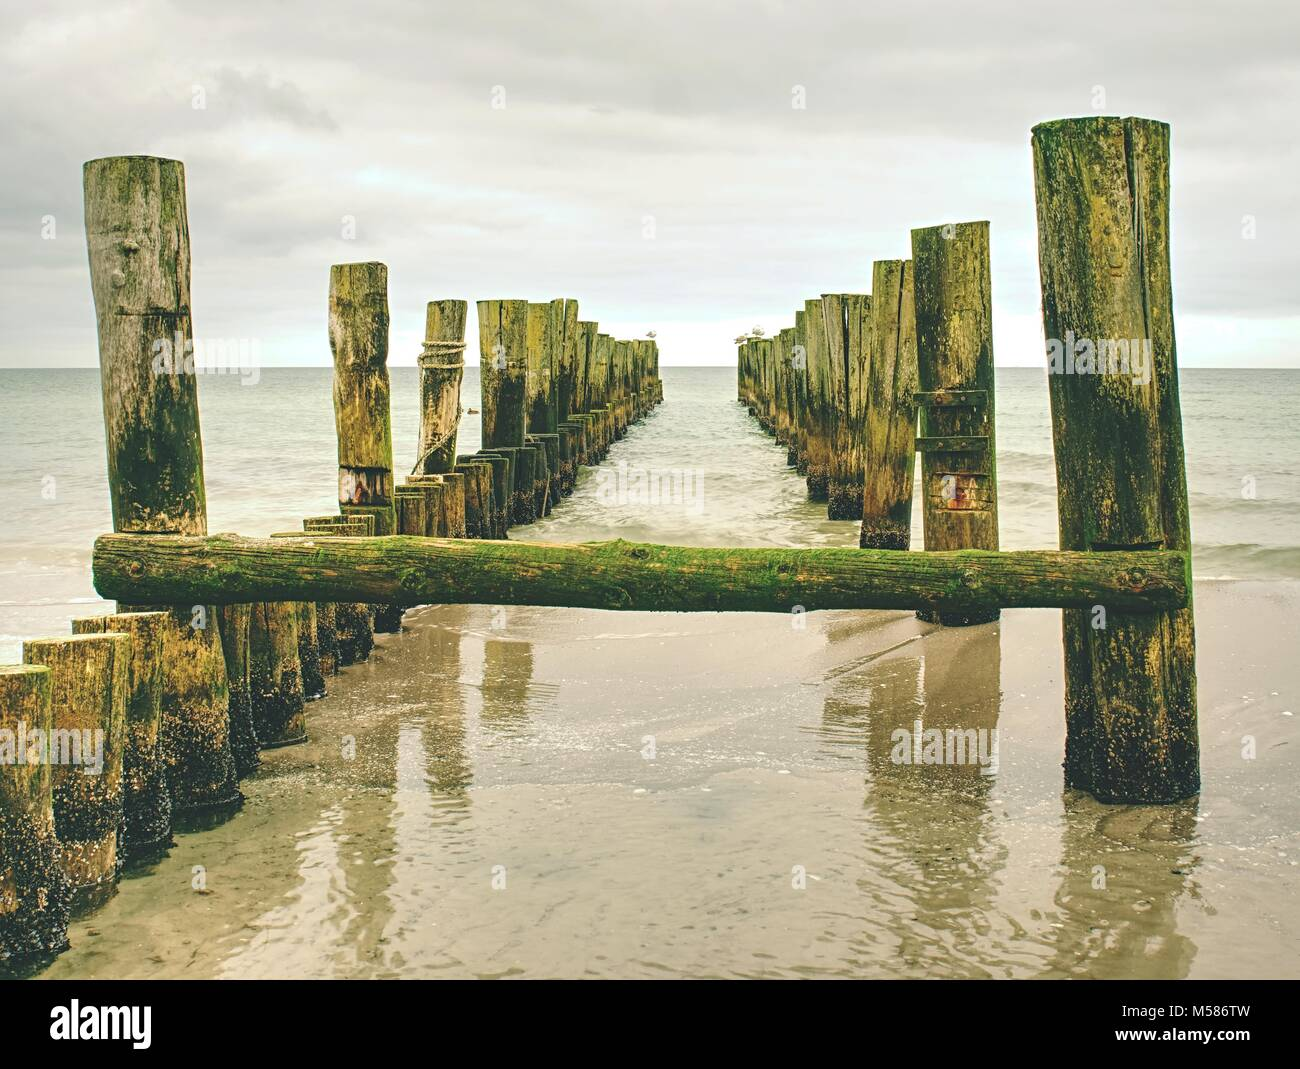 Mossy breakwater poles in smooth water of sea within windless. Sandy beach wit algae, stones and shells. - Stock Image